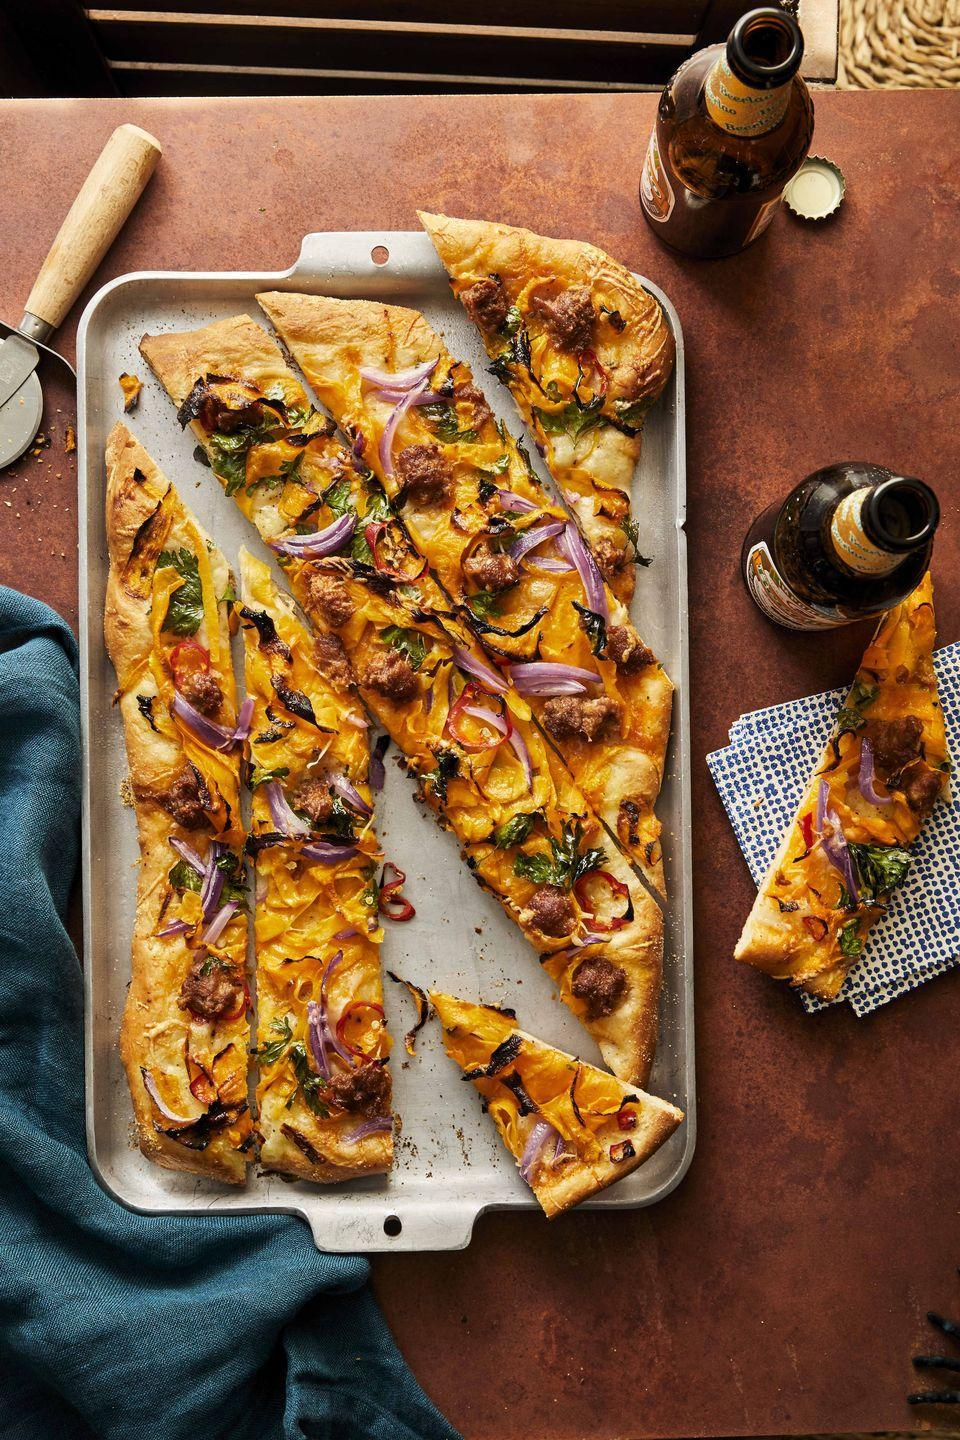 """<p>Hosting friends for pizza night? Give the meal a big fall boost with this smokey, savory dish. Shaved pumpkin is melt-in-your-mouth good, and pairs well with onion, chorizo, and sharp Cheddar cheese.</p><p><strong><a href=""""https://www.countryliving.com/food-drinks/a33944055/pumpkin-chorizo-pizza/"""" rel=""""nofollow noopener"""" target=""""_blank"""" data-ylk=""""slk:Get the recipe"""" class=""""link rapid-noclick-resp"""">Get the recipe</a>.</strong> </p>"""